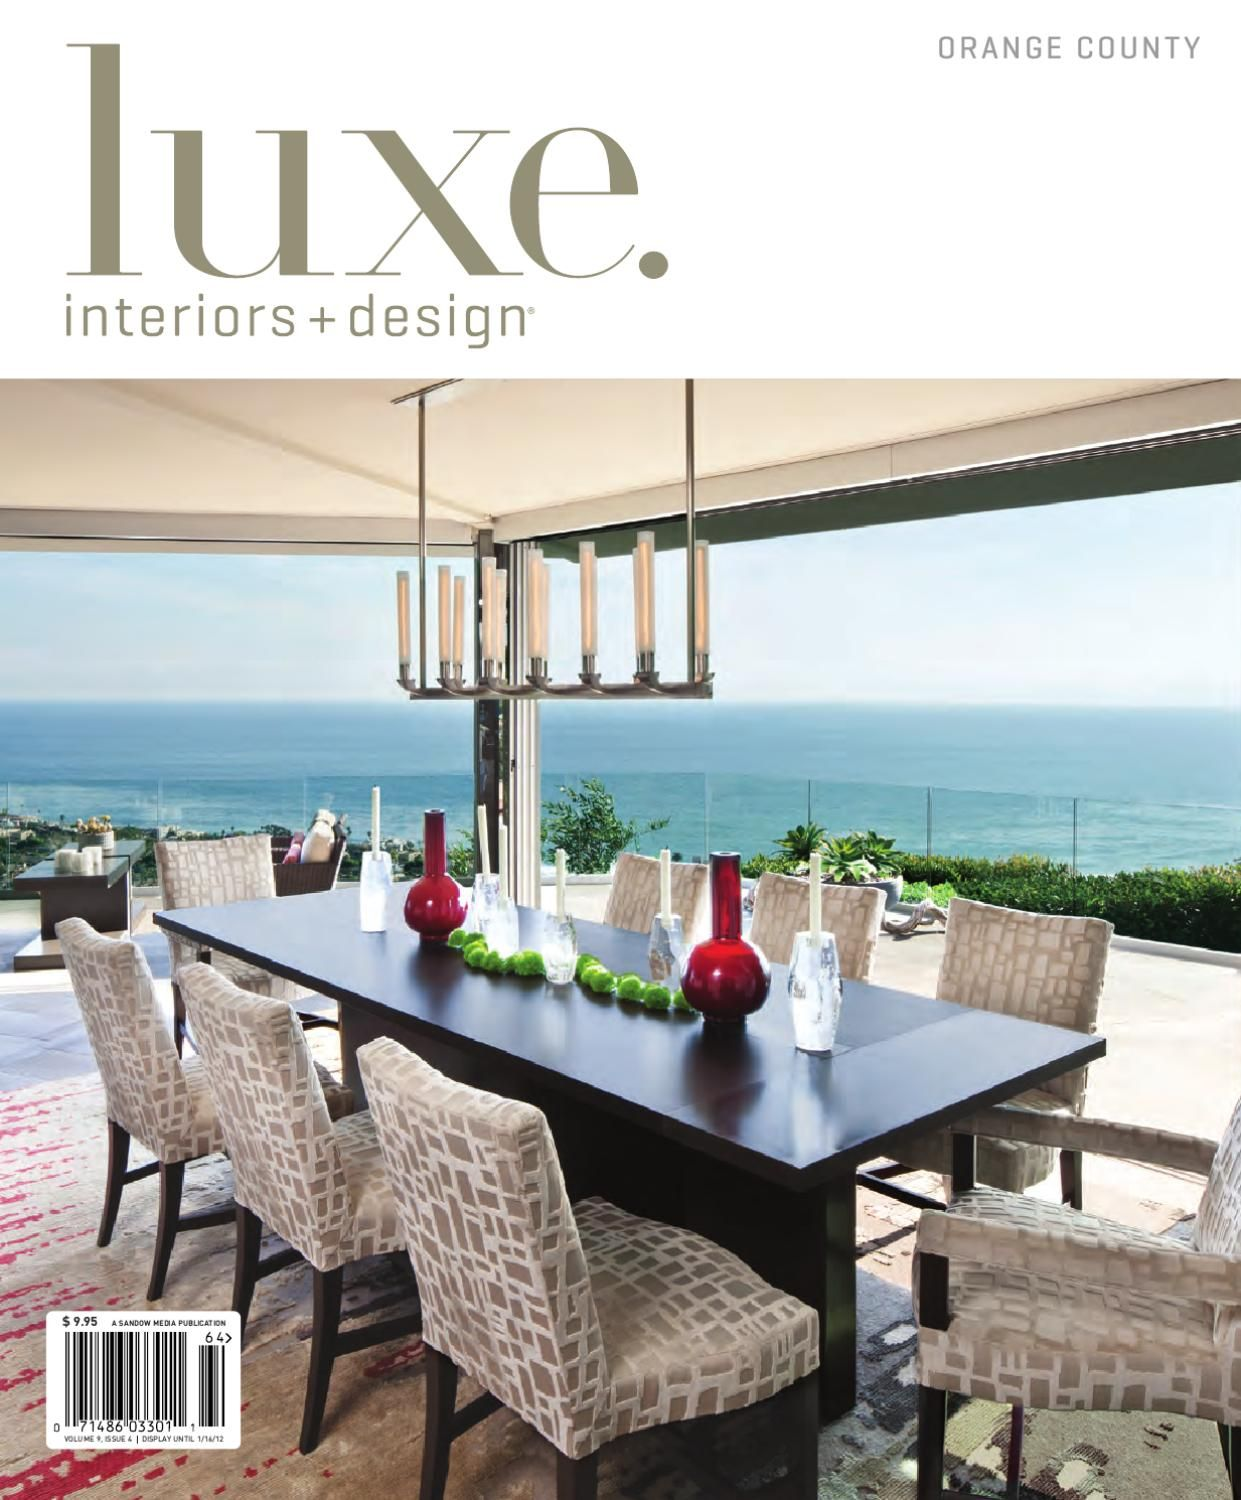 LUXE Interiors + Design Orange County 17 LUXE Interiors + Design Magazine  Is A Quarterly Journal That Showcases Luxury Residential Architecture,  Design, ...